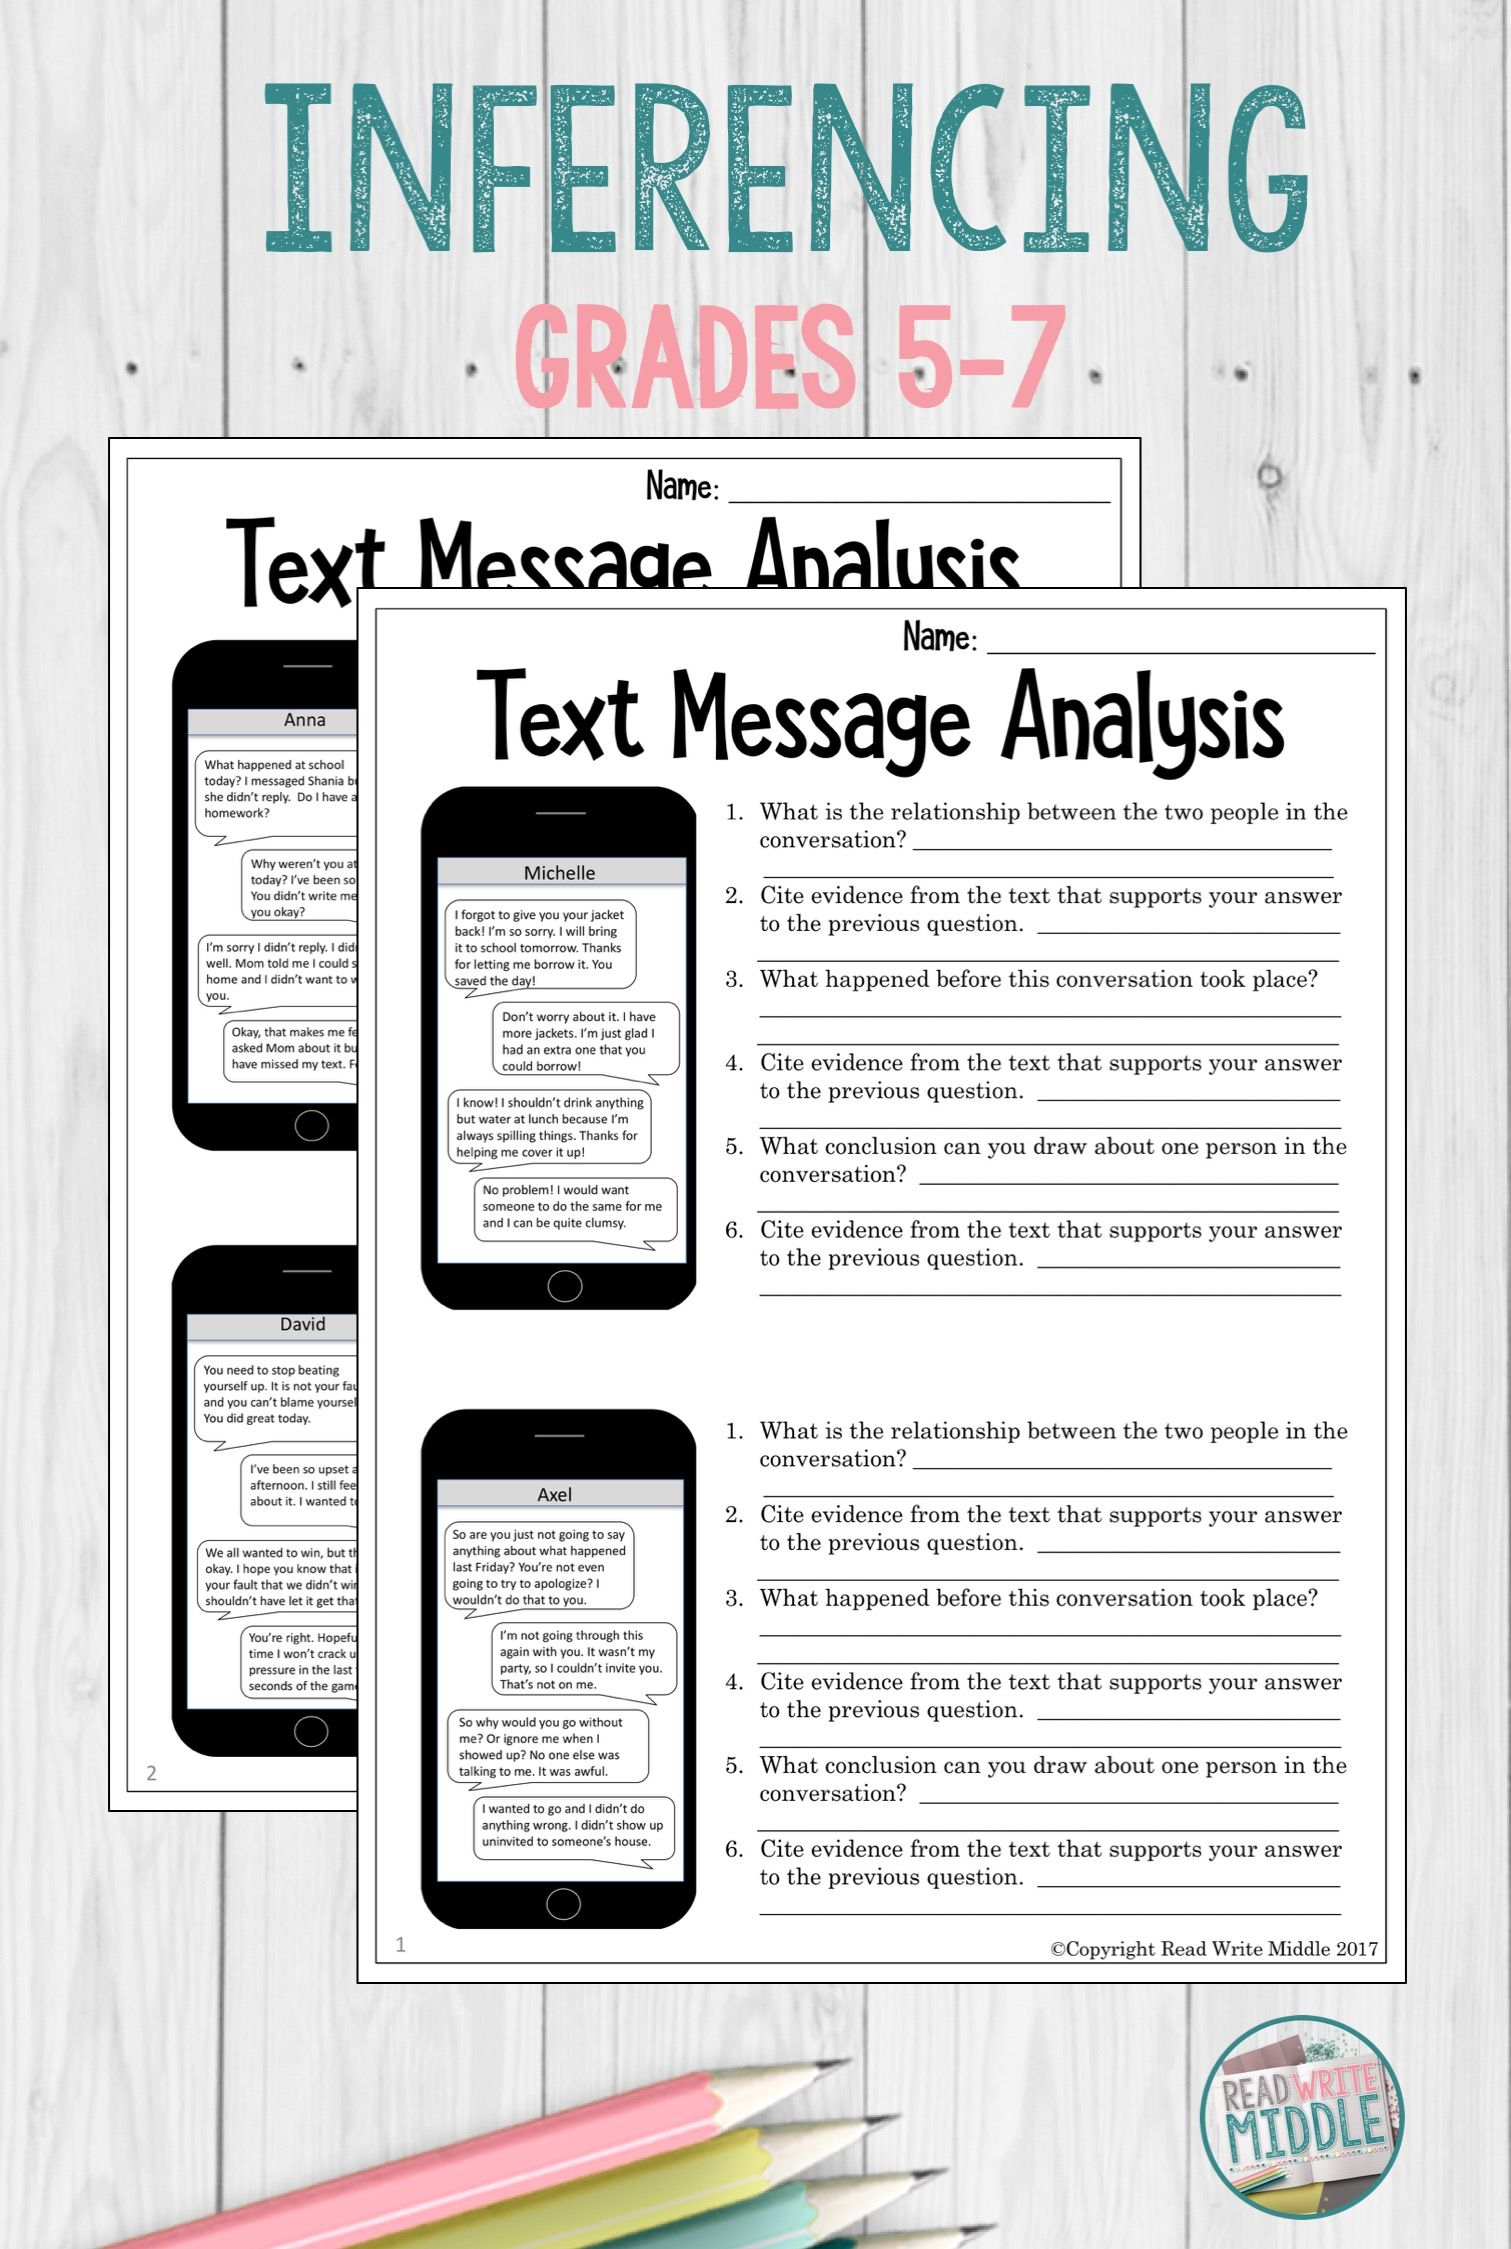 Text Messageysis Making Inferences And Citing